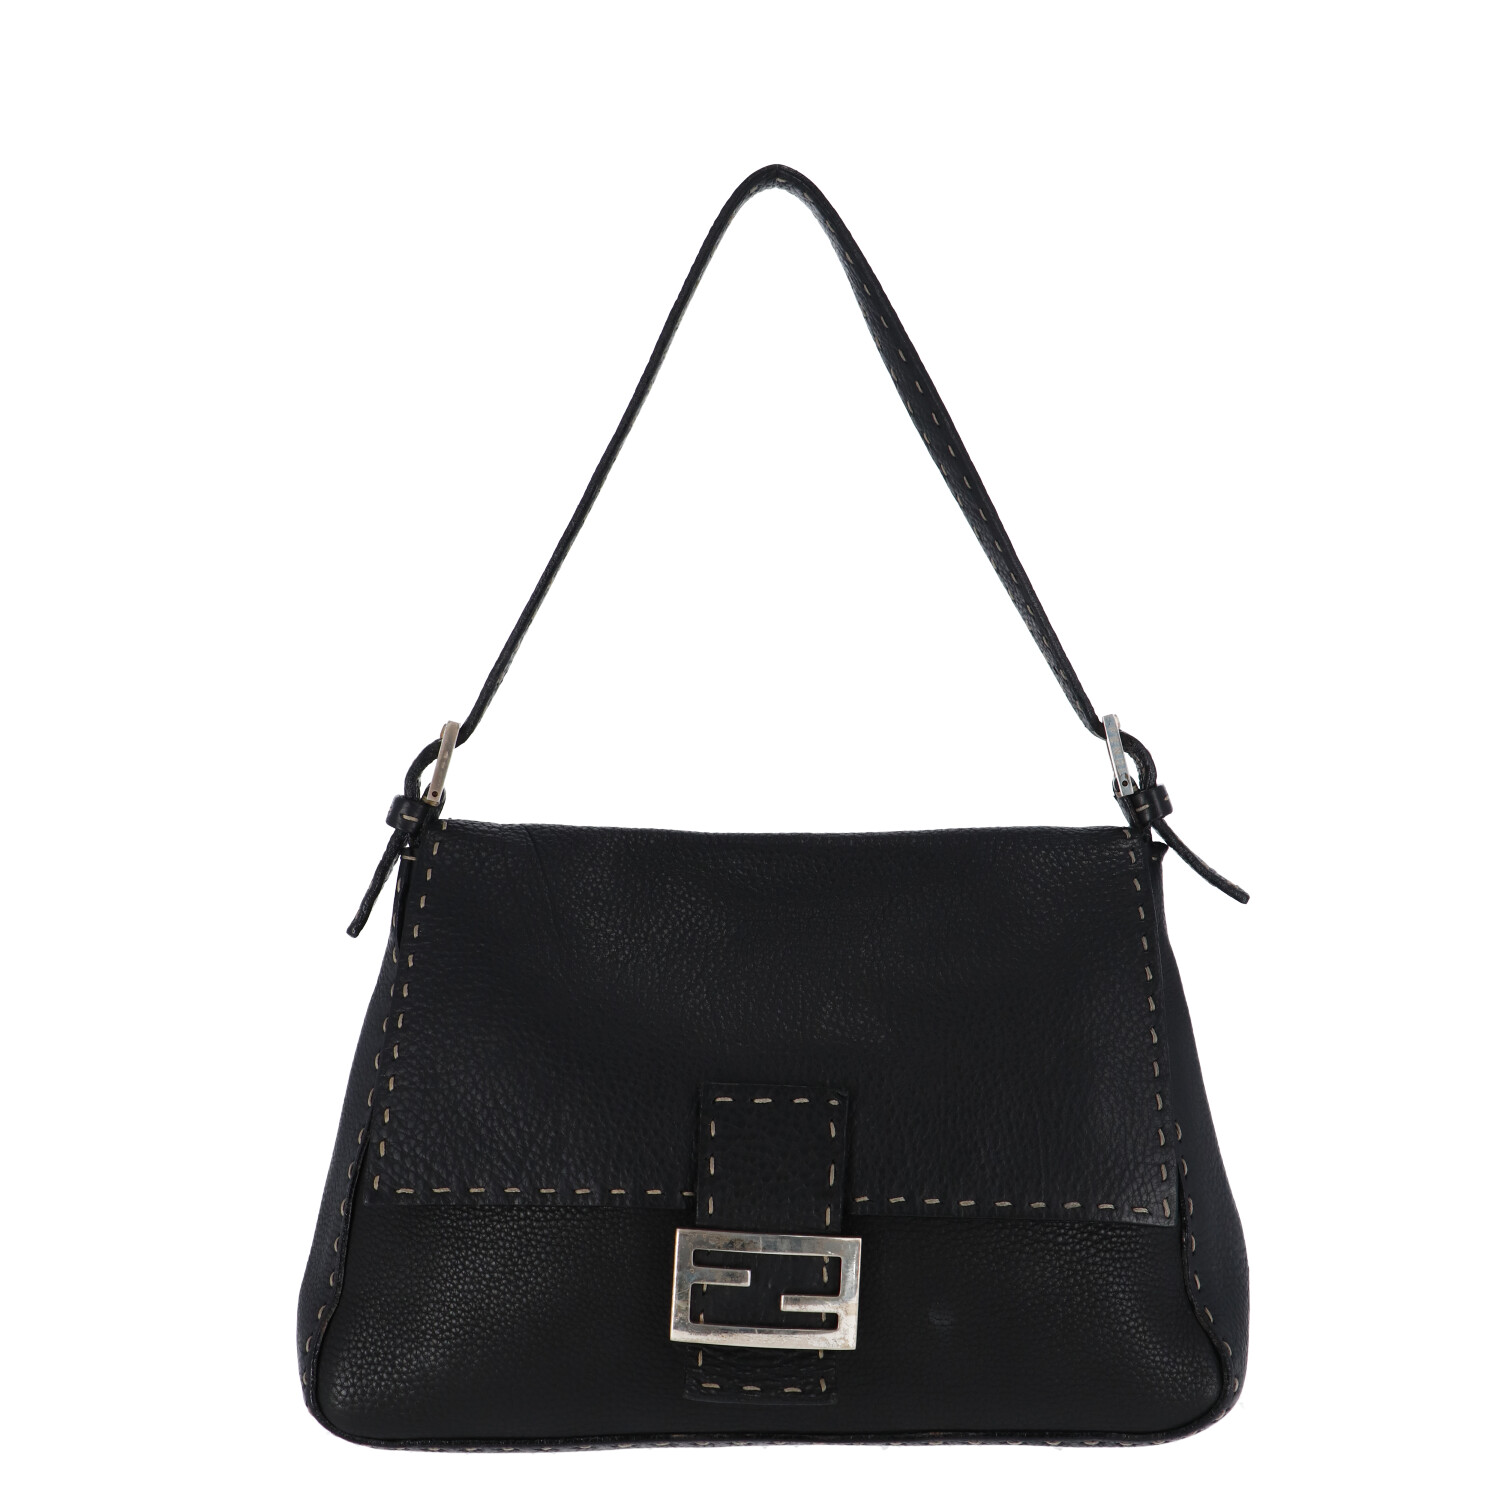 Fendi Black Leather Baguette Mamma